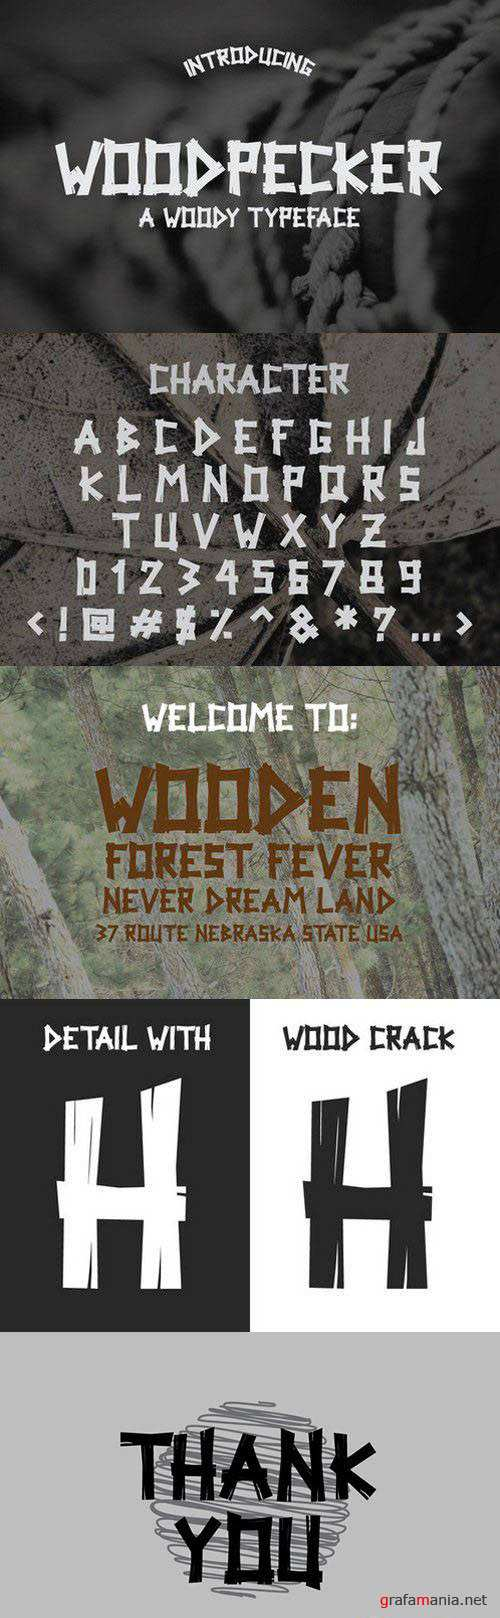 Font - Woodpecker Typeface